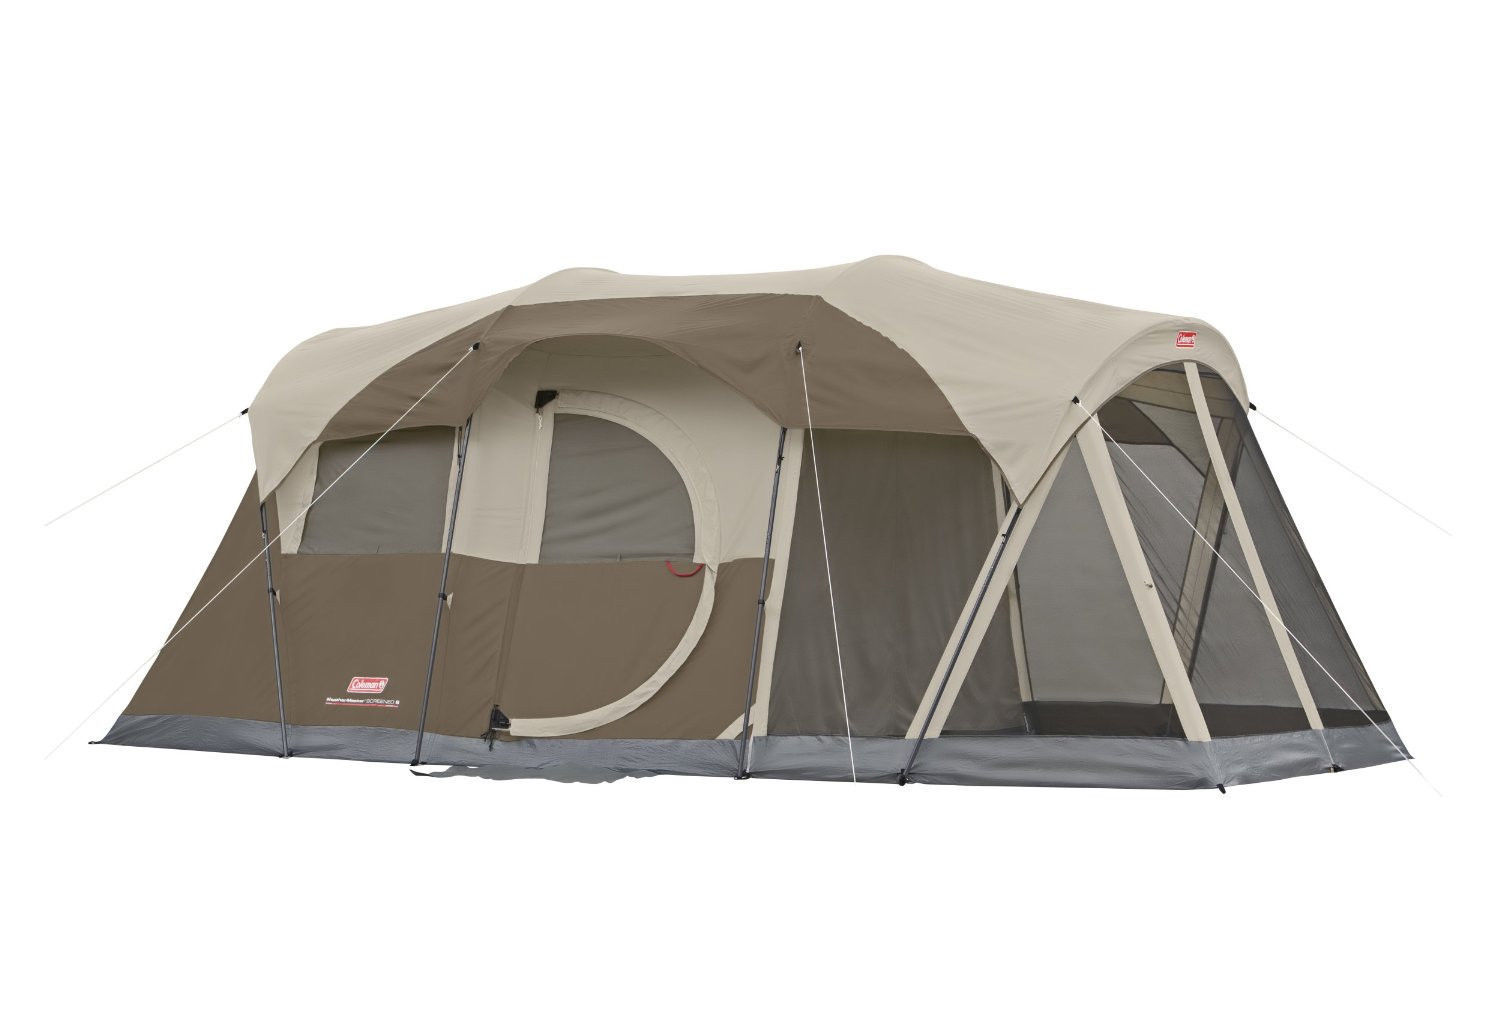 Tent coleman weathermaster screened 6 person camping for Small 3 room tent